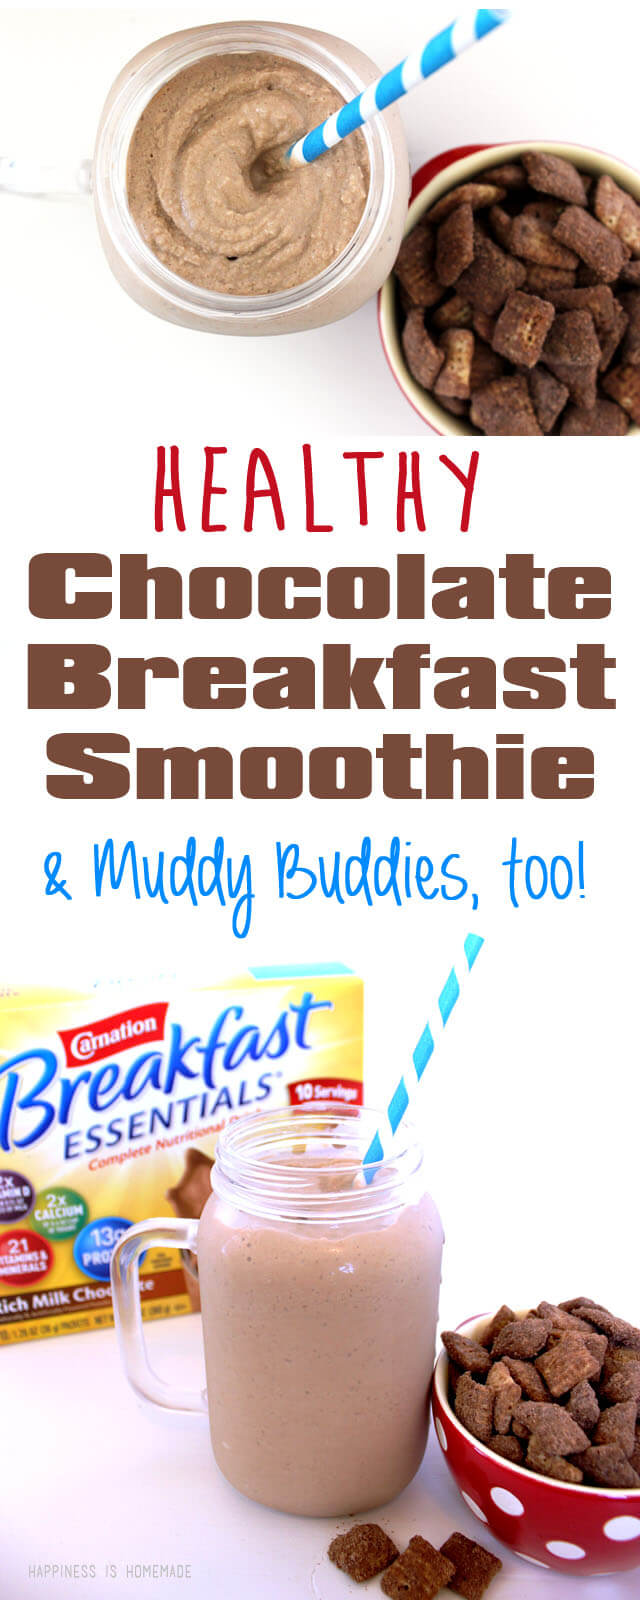 Healthy Chocolate Breakfast Essentials Smoothie